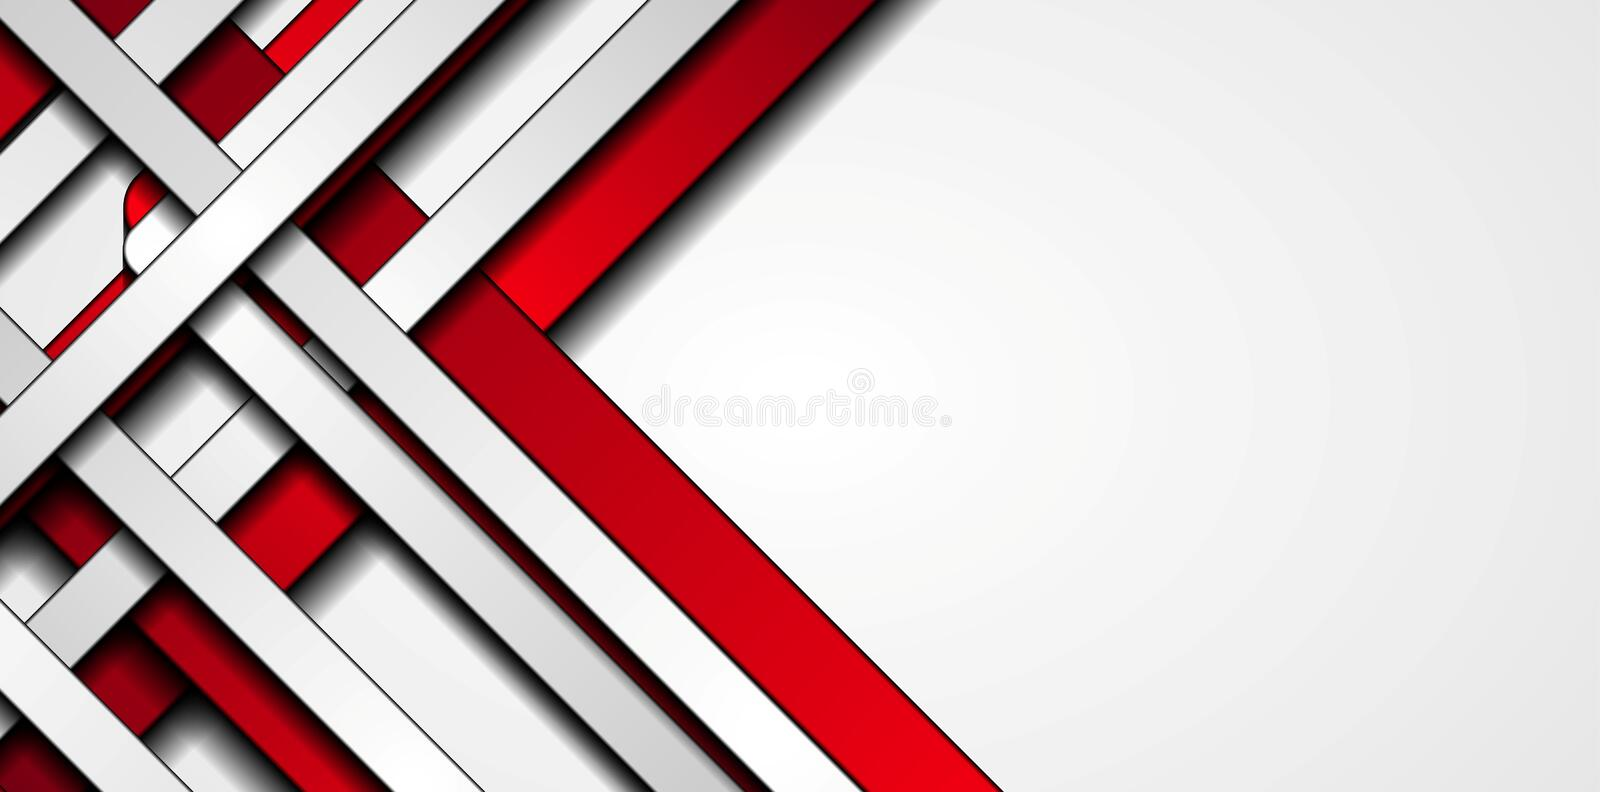 Red and grey stripes abstract tech background vector illustration